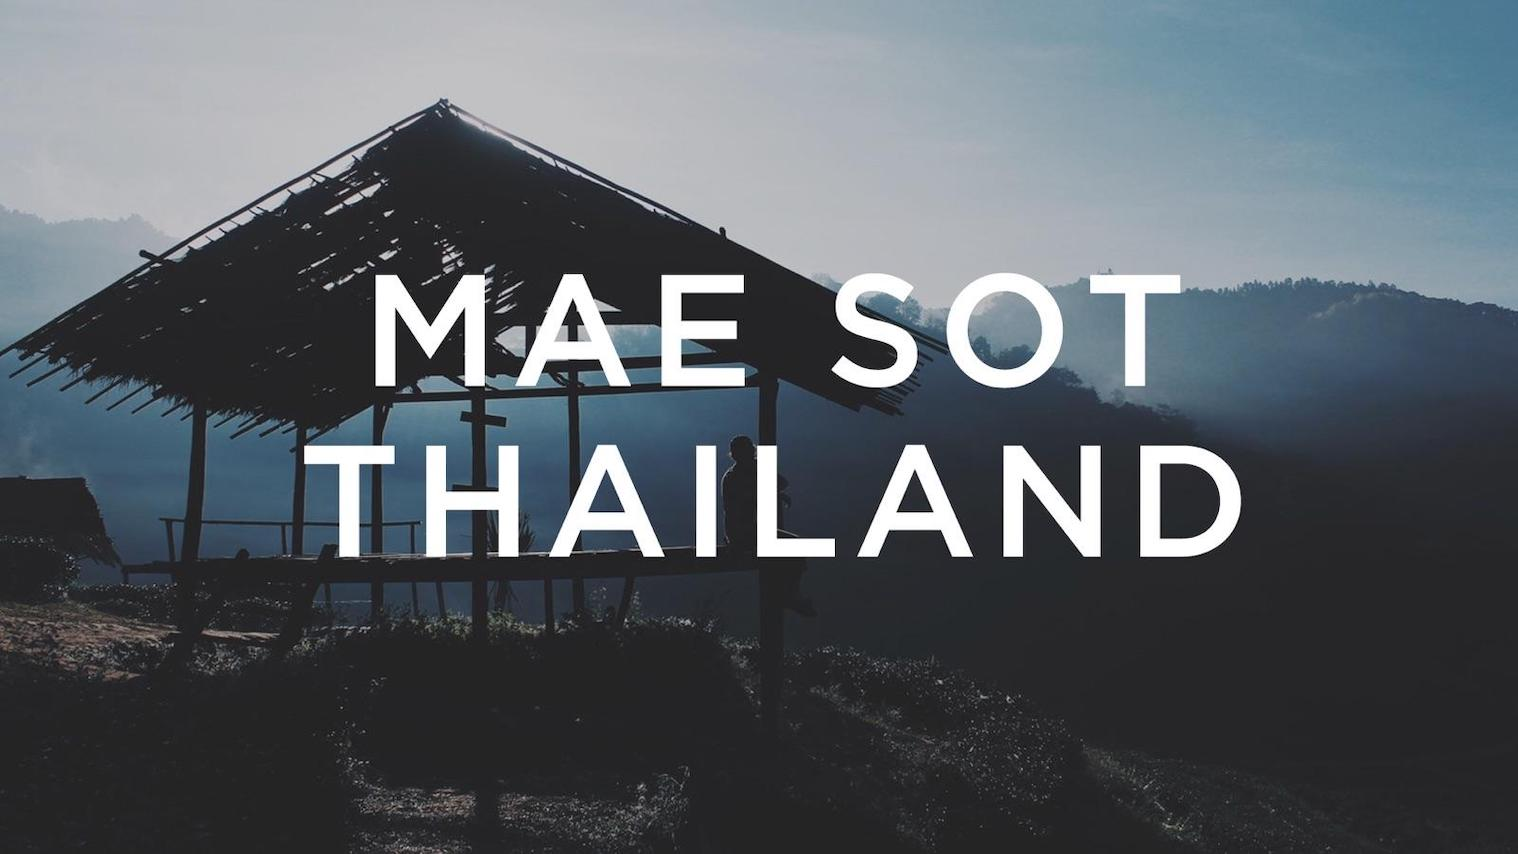 November 4-16, 2019 - ConstructionProject for Mae Sot Foursquare Church$2100 (approx)missions@inspire.church